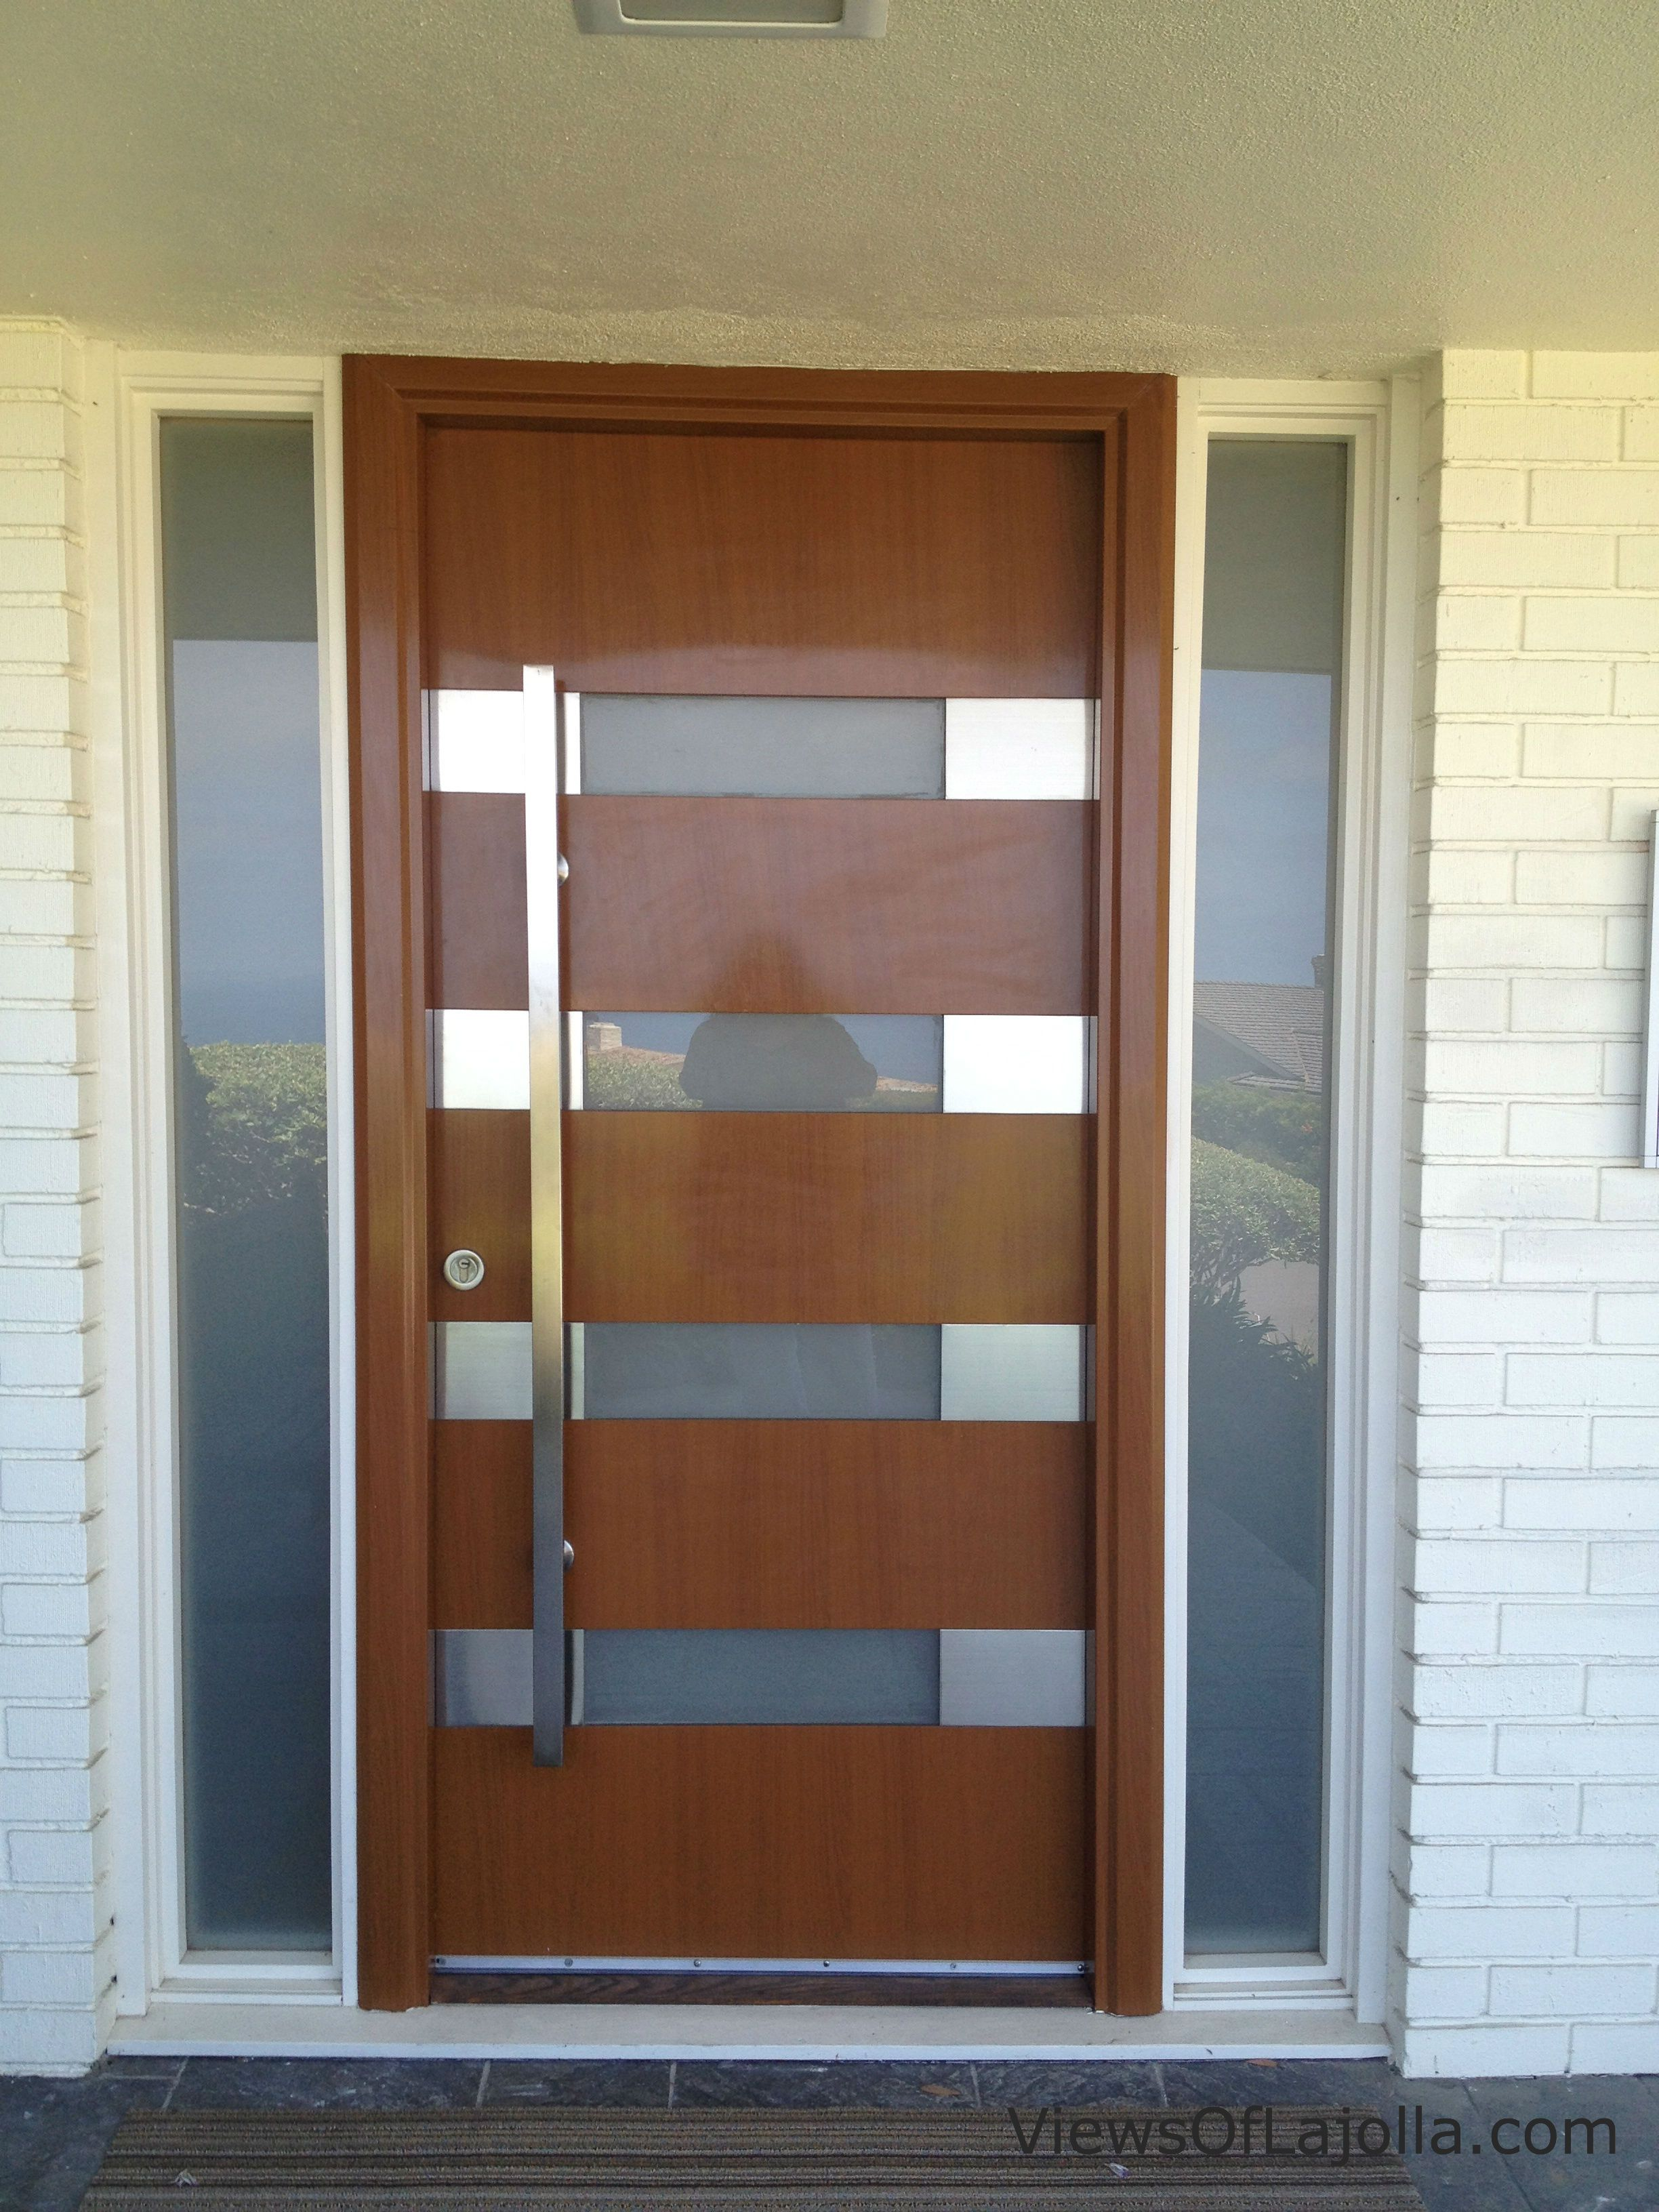 Main Door Design Door Design Modern Wood: Wood & Steel Contemporary Door